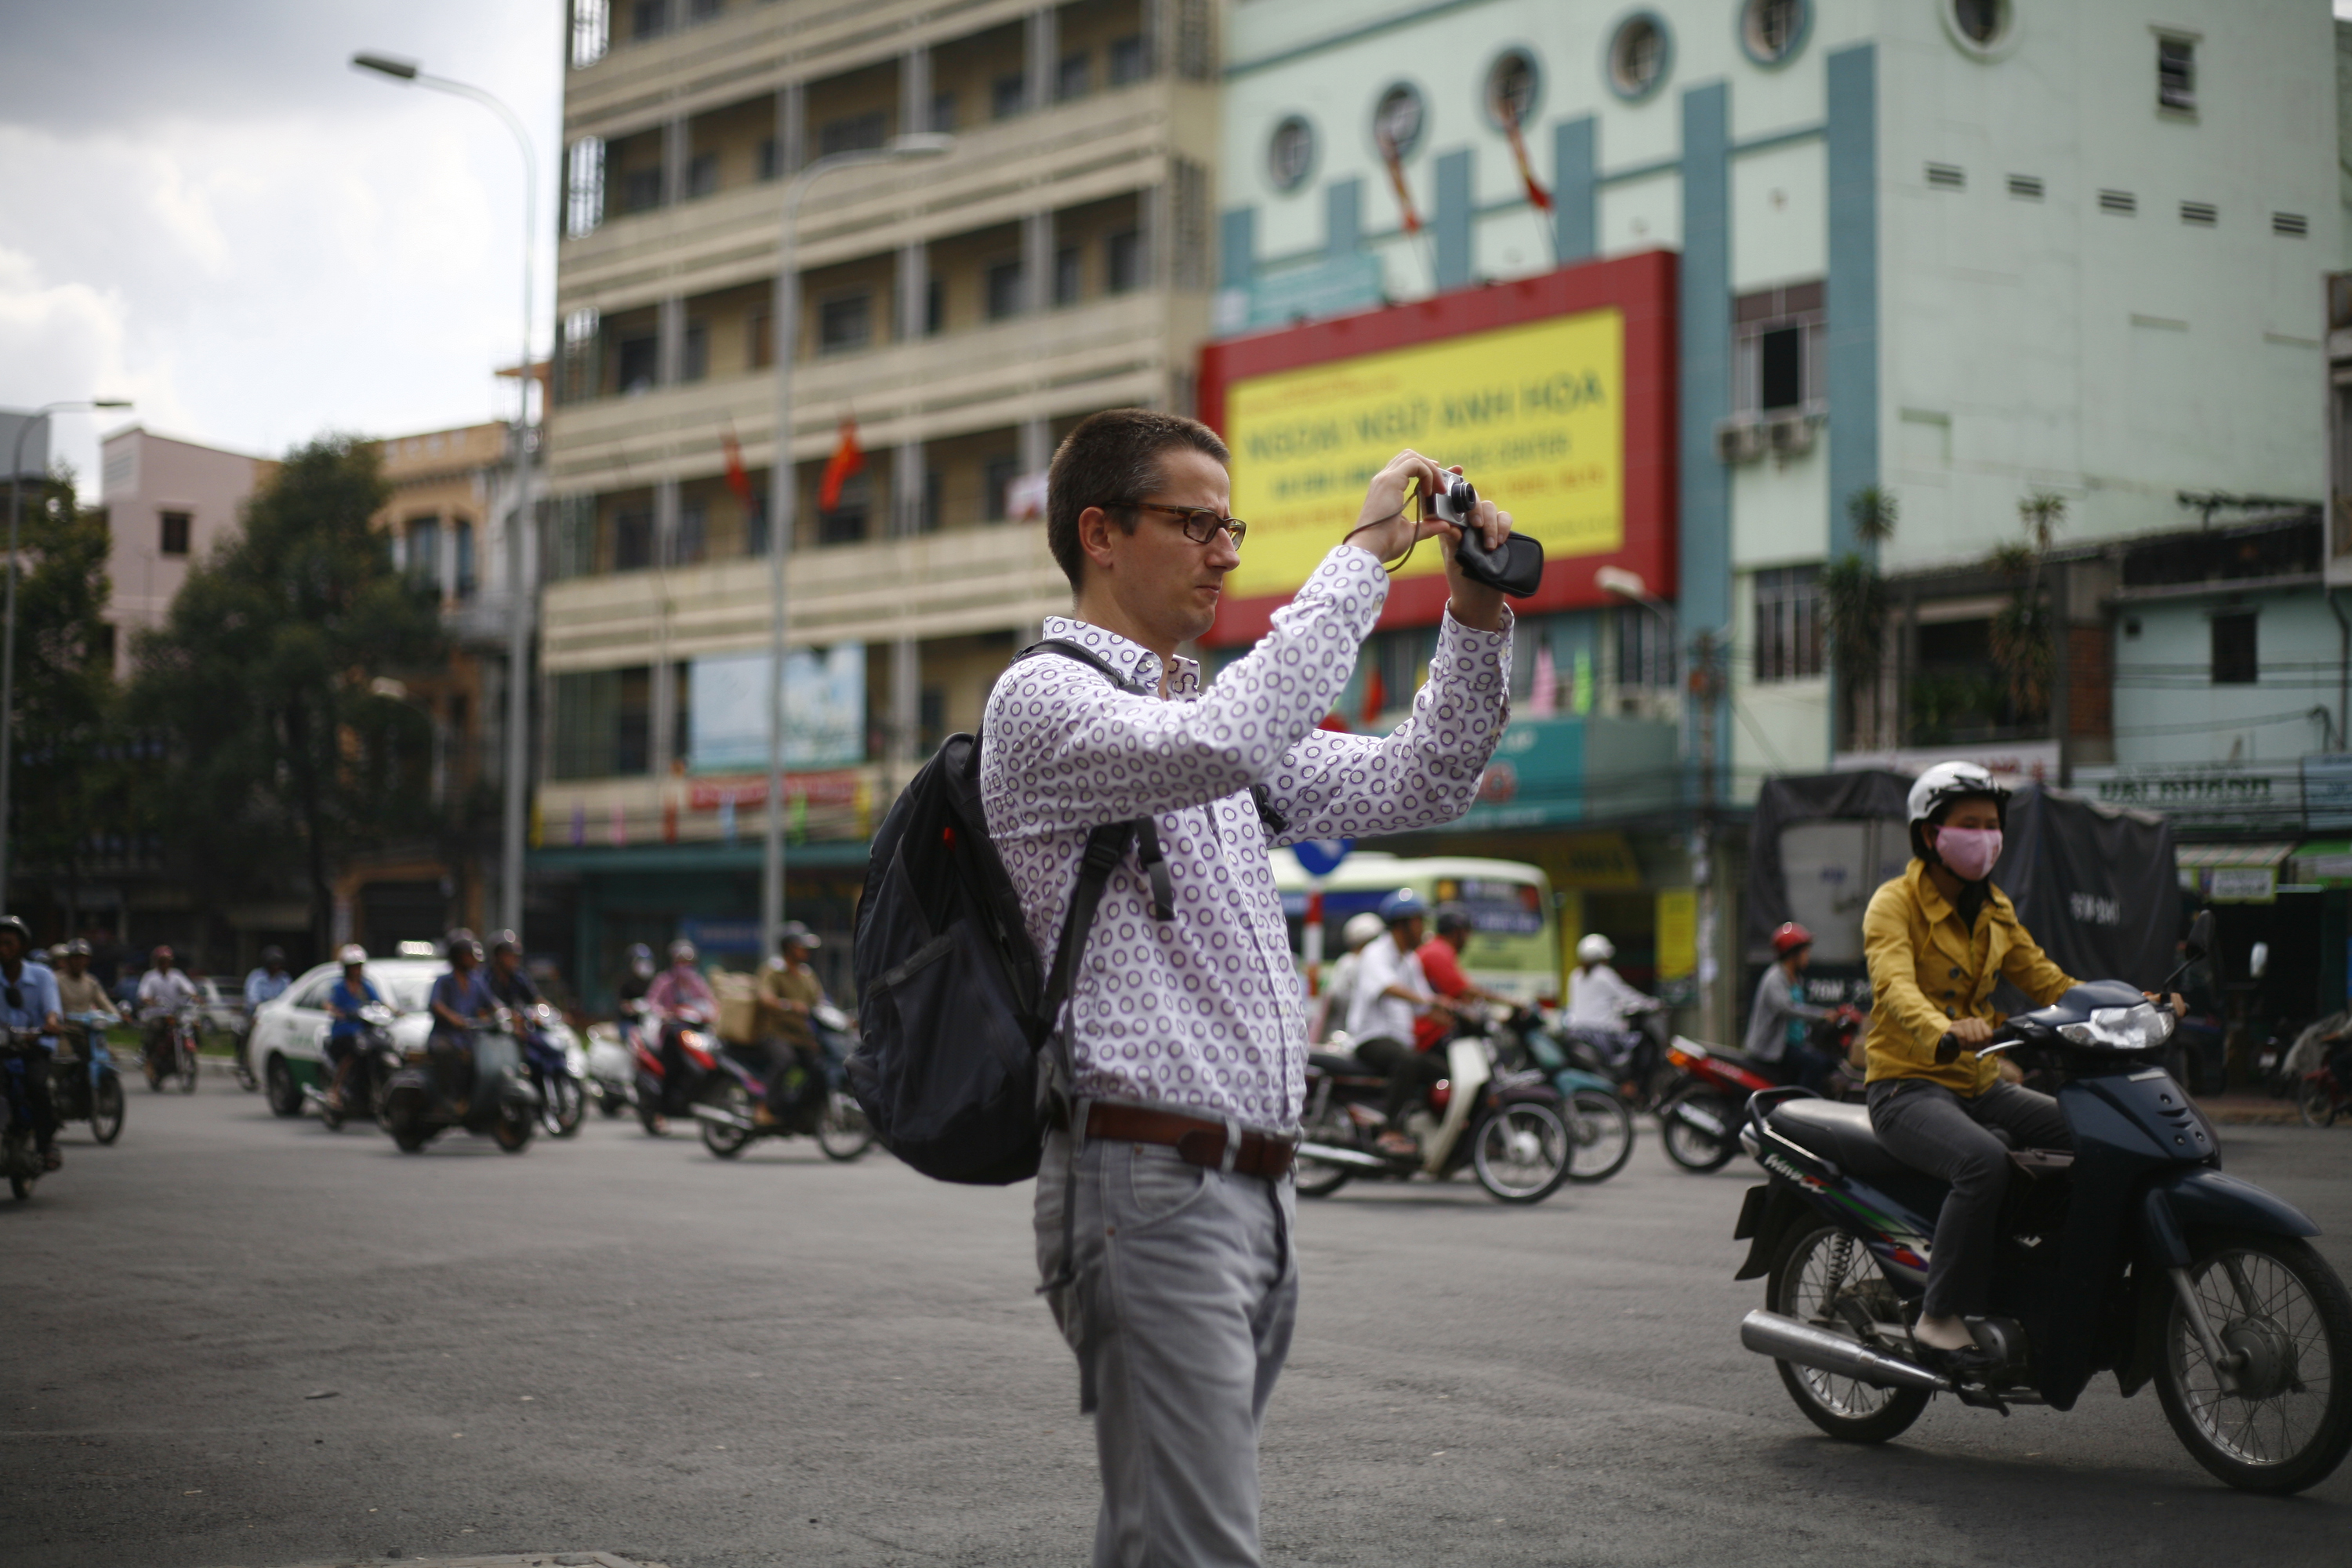 Dutch architect seeks solutions to climate change issues in Vietnam